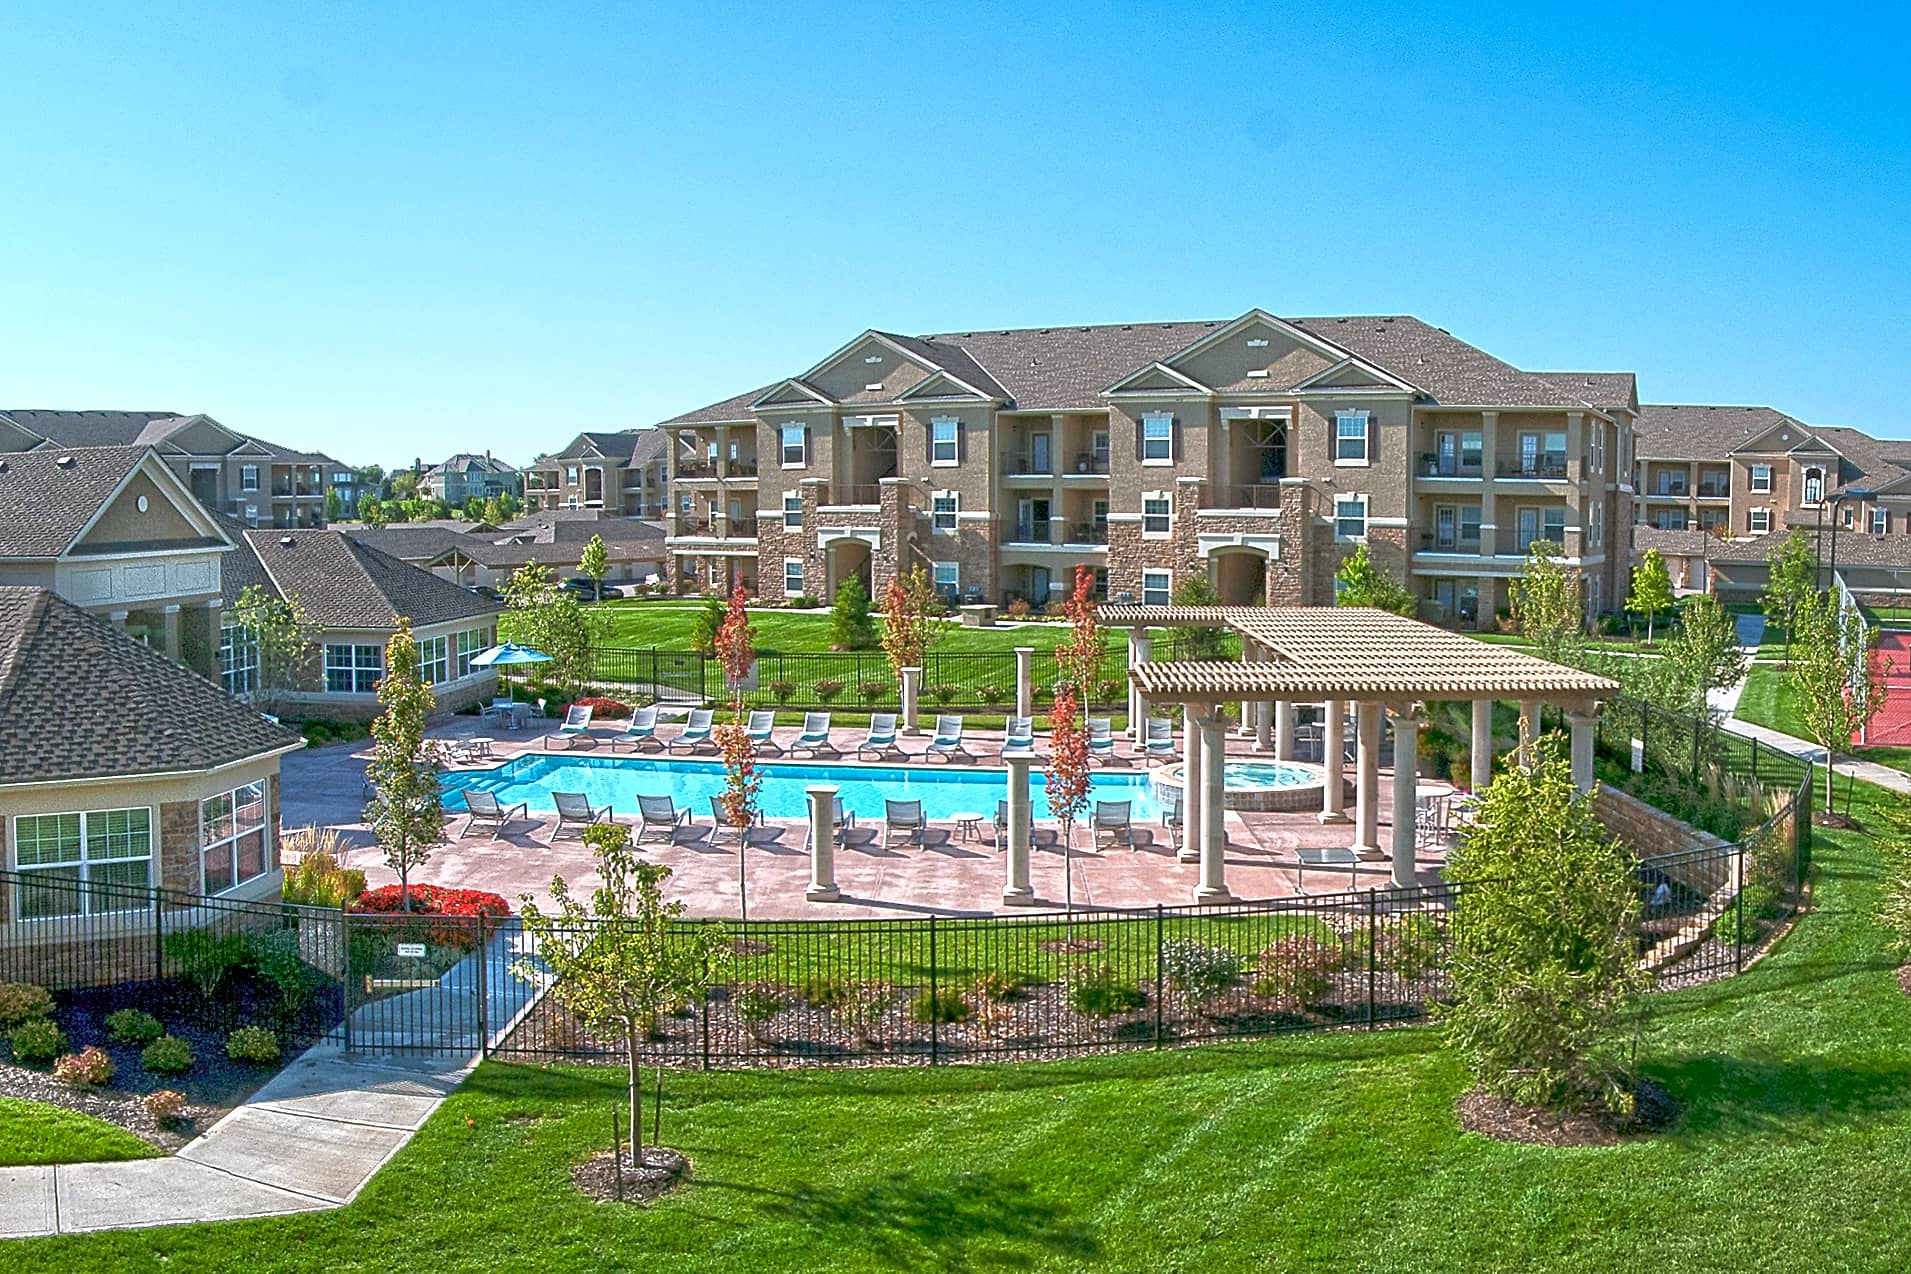 Village View Apartments Overland Park Ks